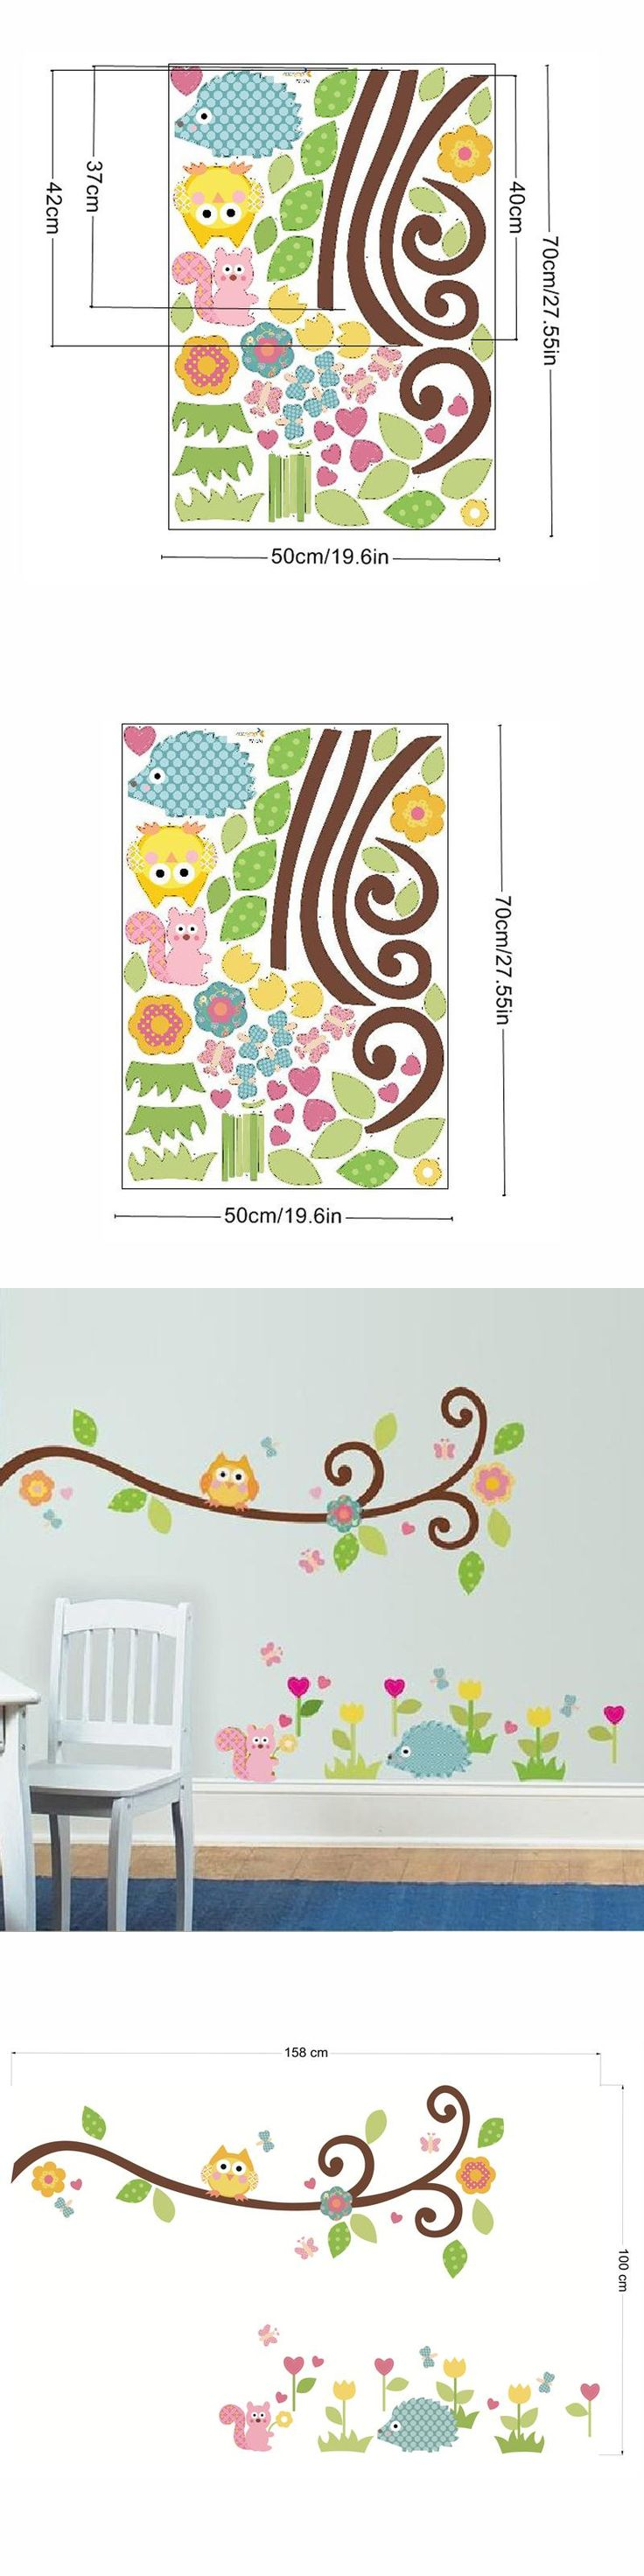 ehome owl on swirl tree wall stickers for children hedgehog flowers wall decals vinyl diy nursery